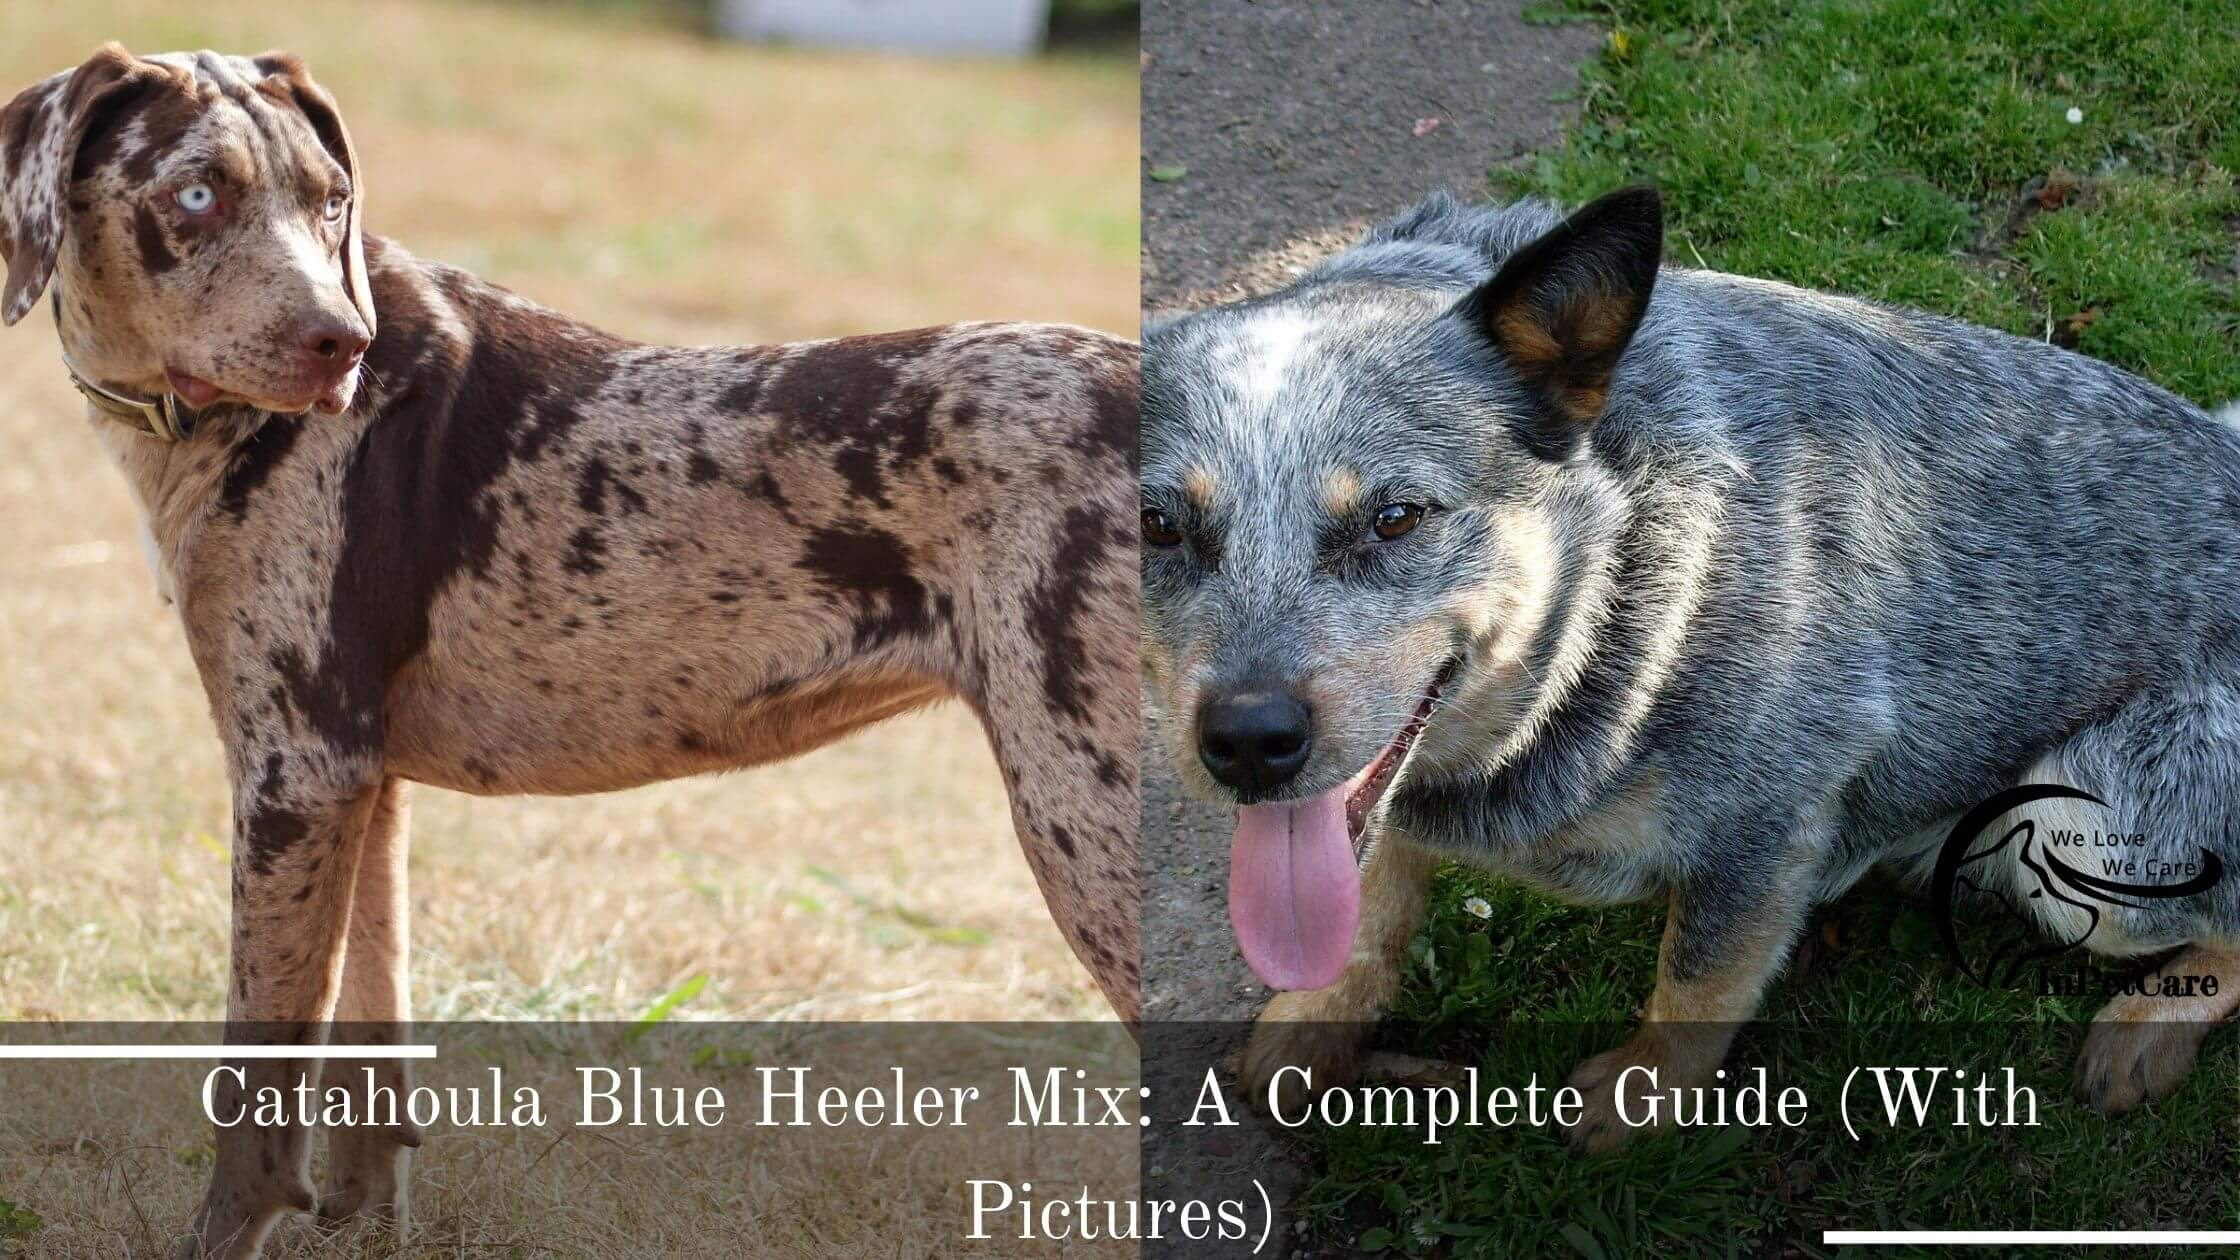 Catahoula Blue Heeler Mix: A Complete Guide (With Pictures)